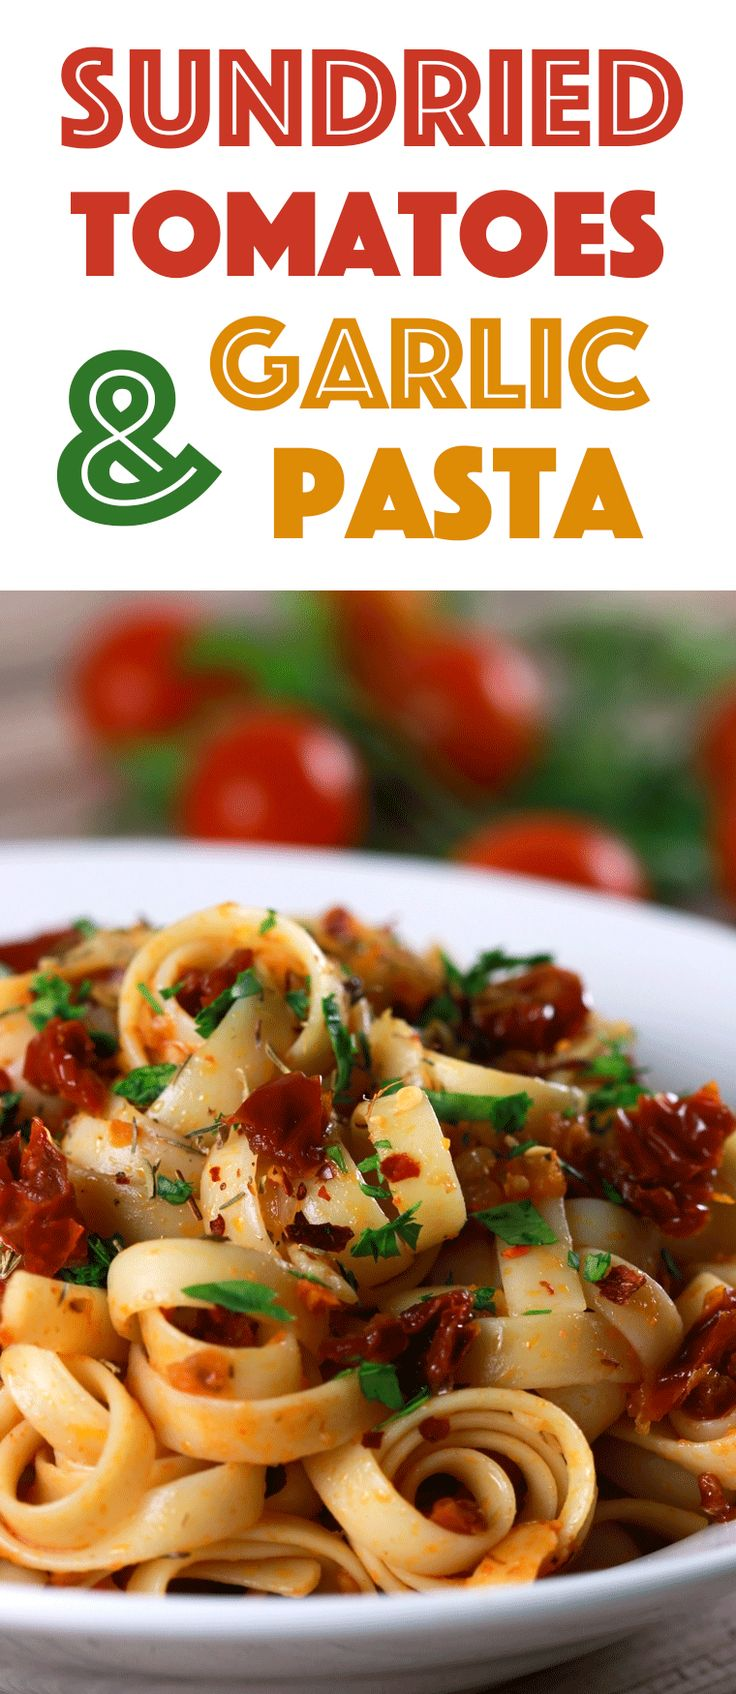 This pasta recipe is PERFECT for mid-week lazy days and tastes spectacular!! And learn how to make delicious sundried tomatoes yourself while you're at it! YUM!! | ScrambledChefs.com